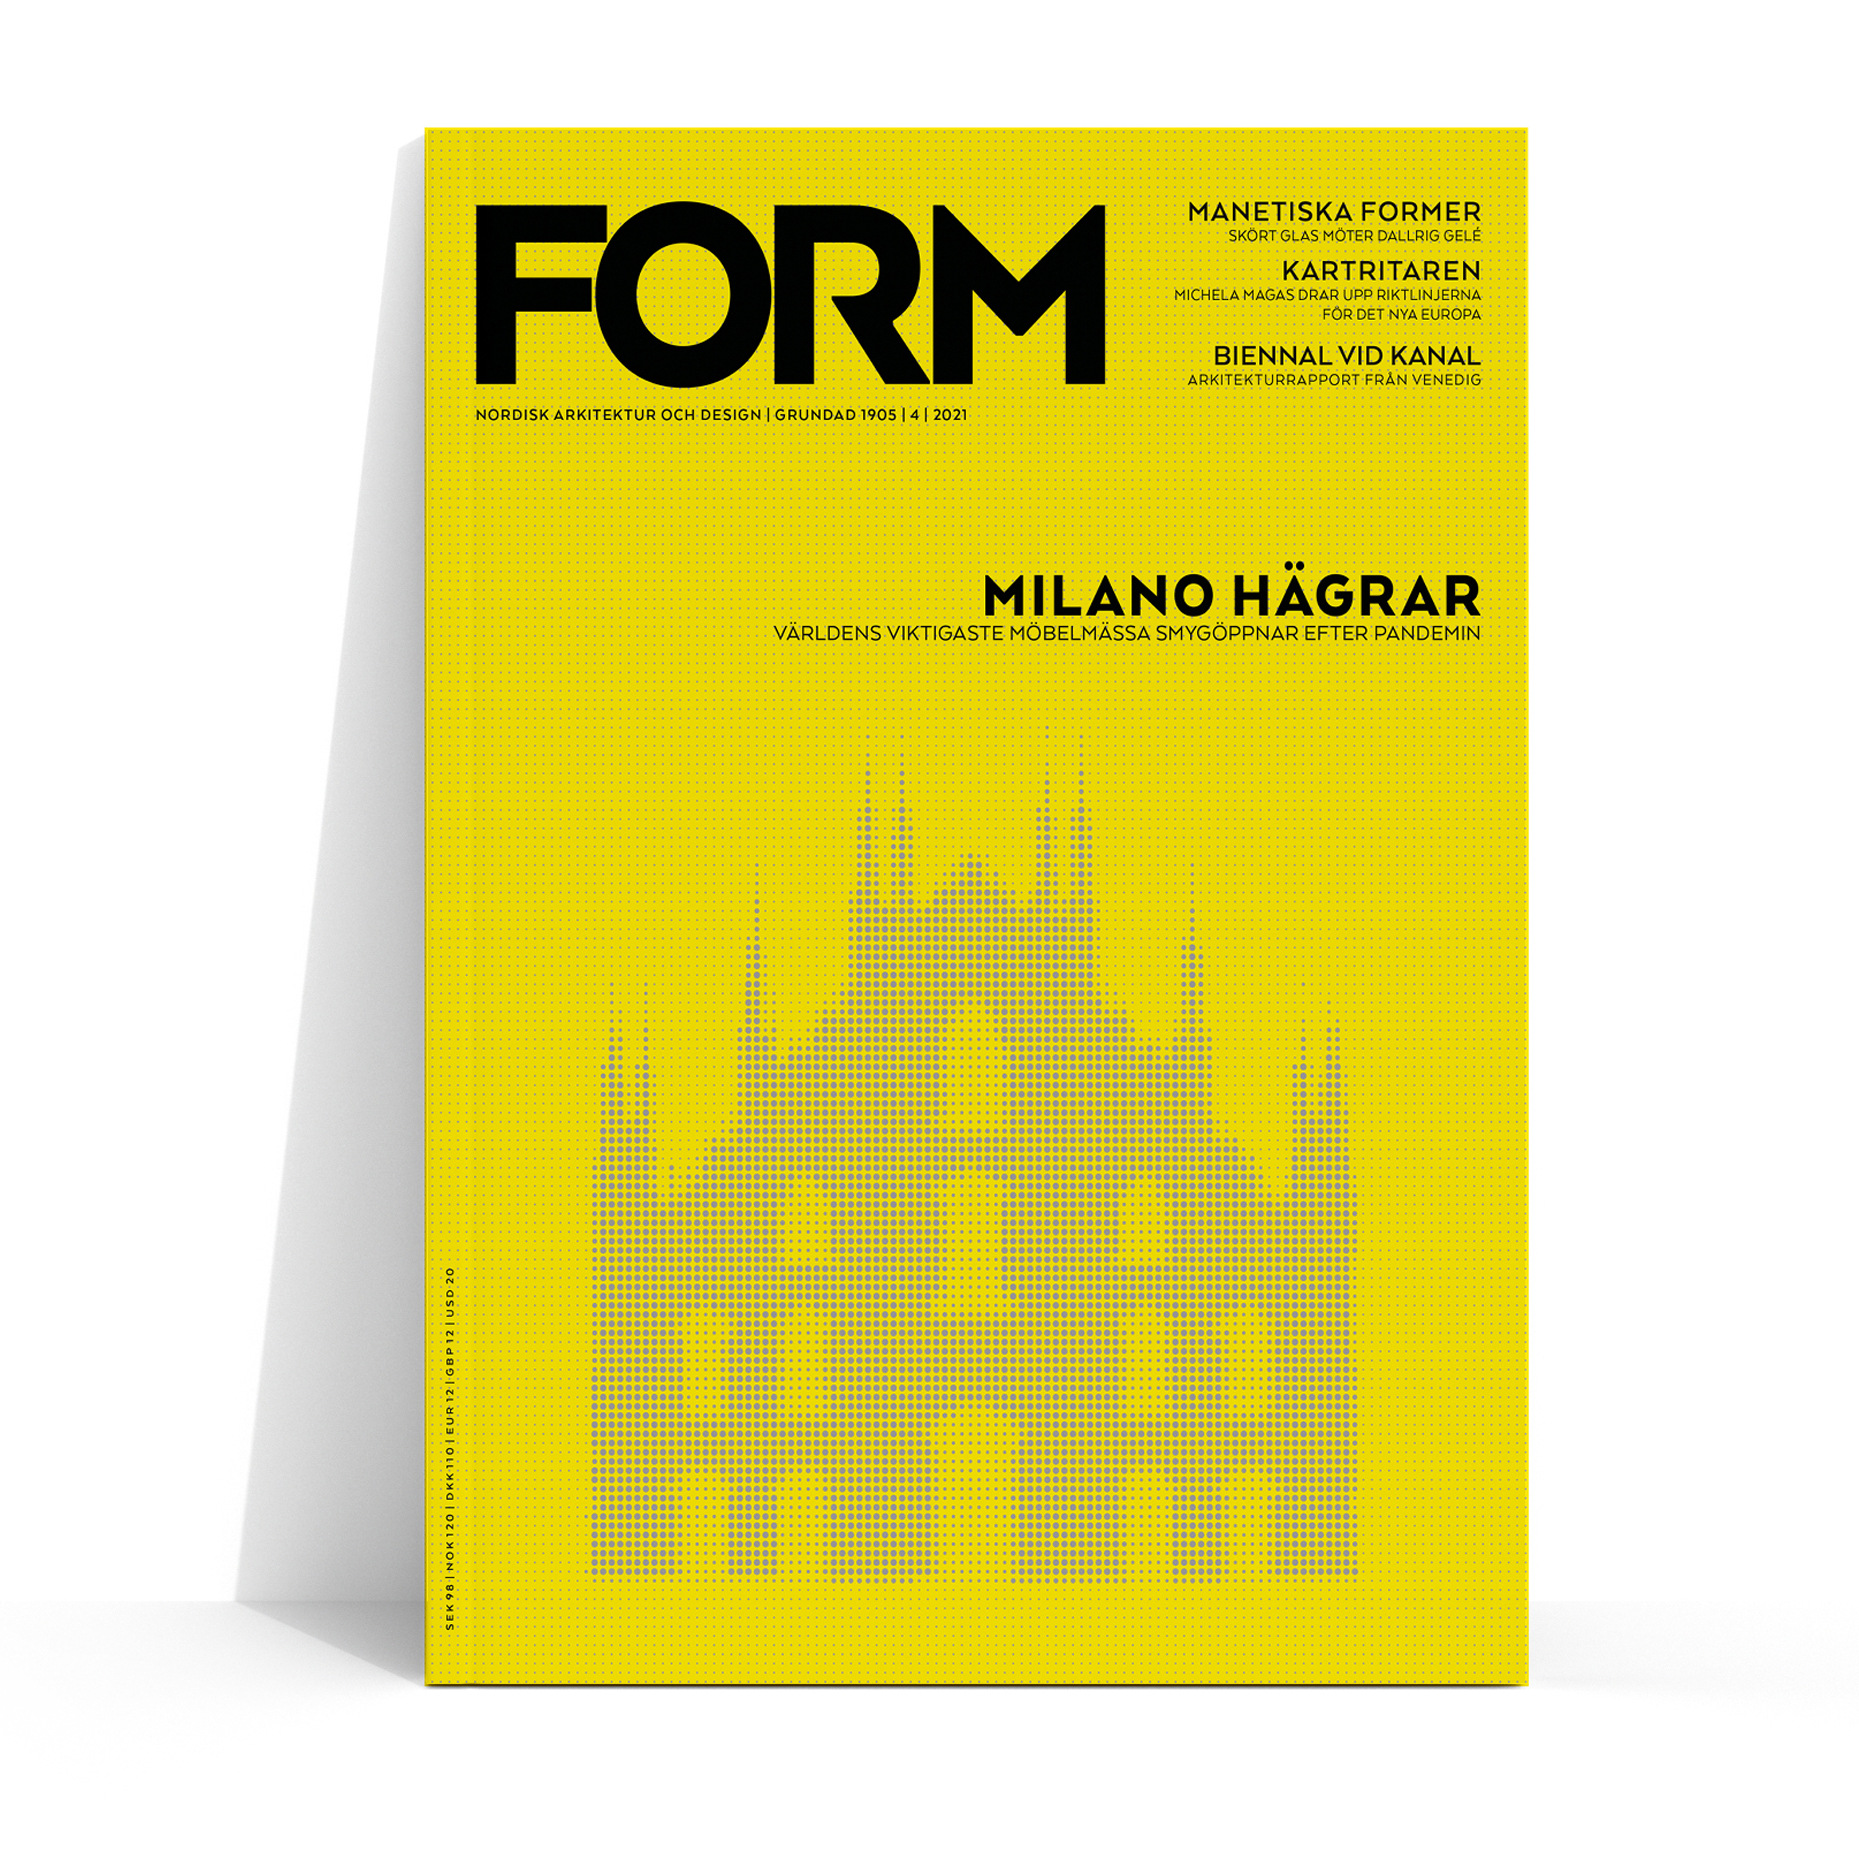 Form cover01.jpg